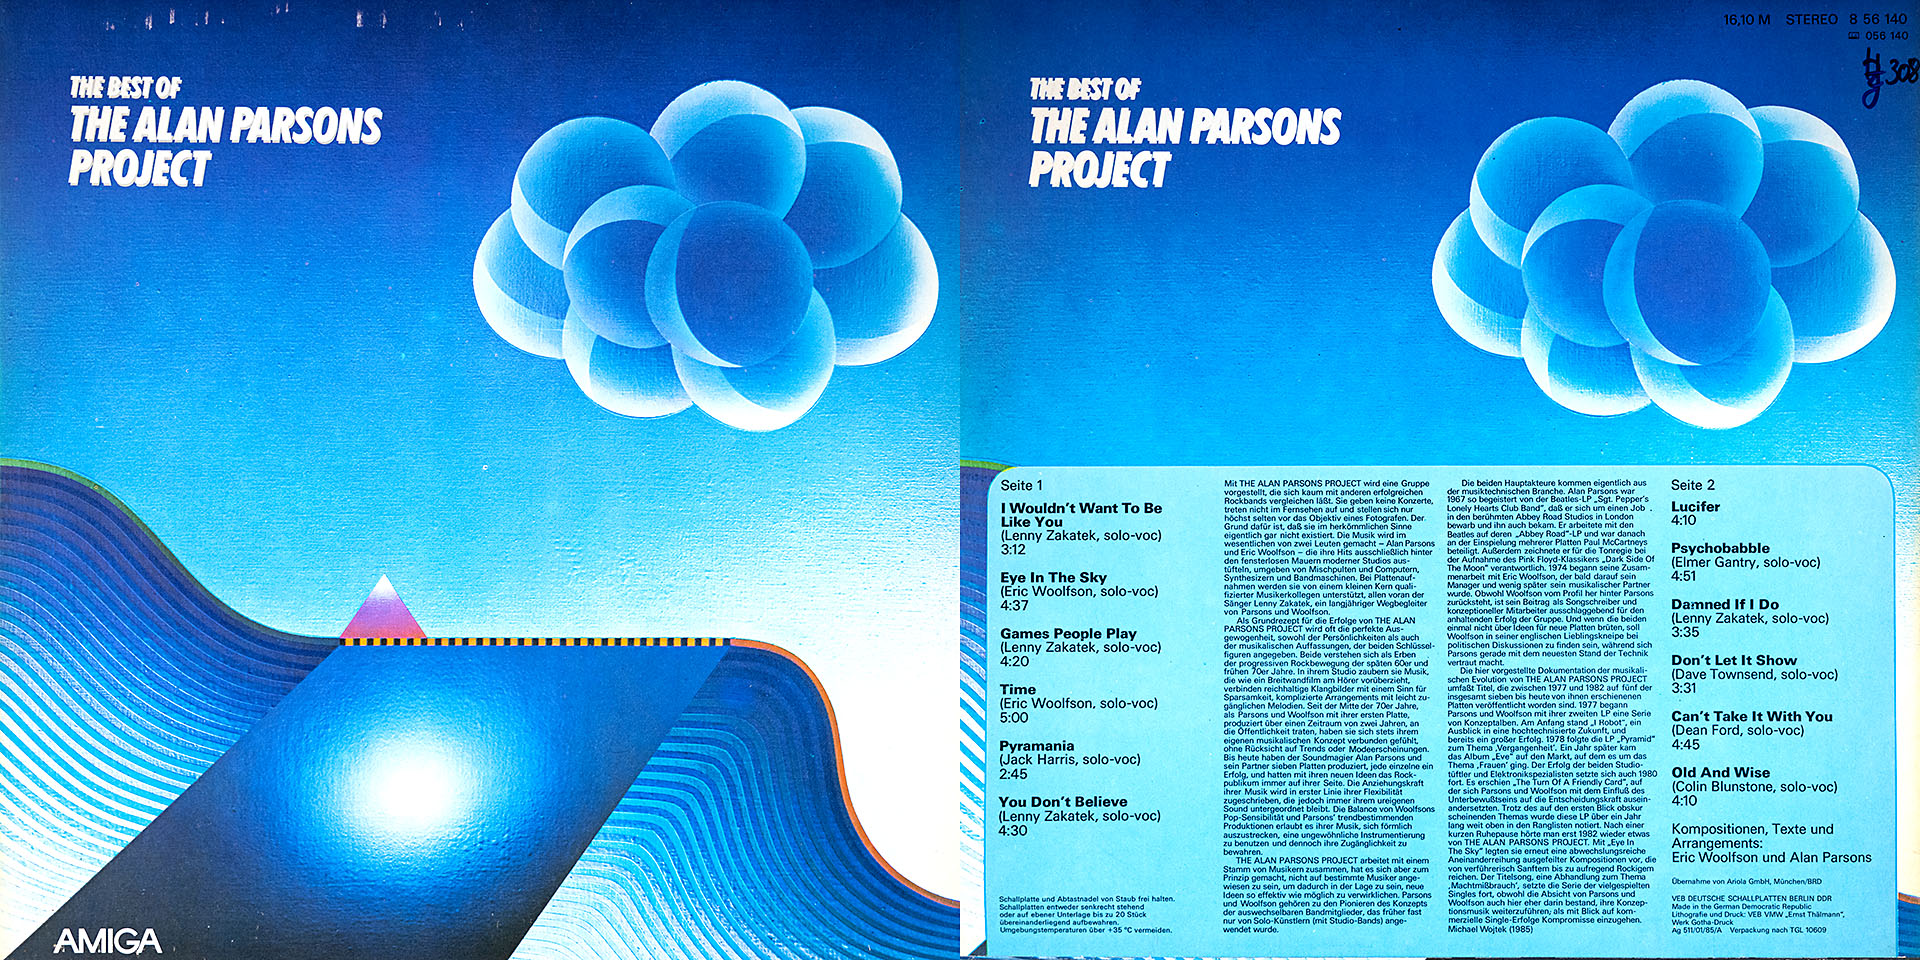 The Best Of The Alan Parsons Project - Alan Parsons Project